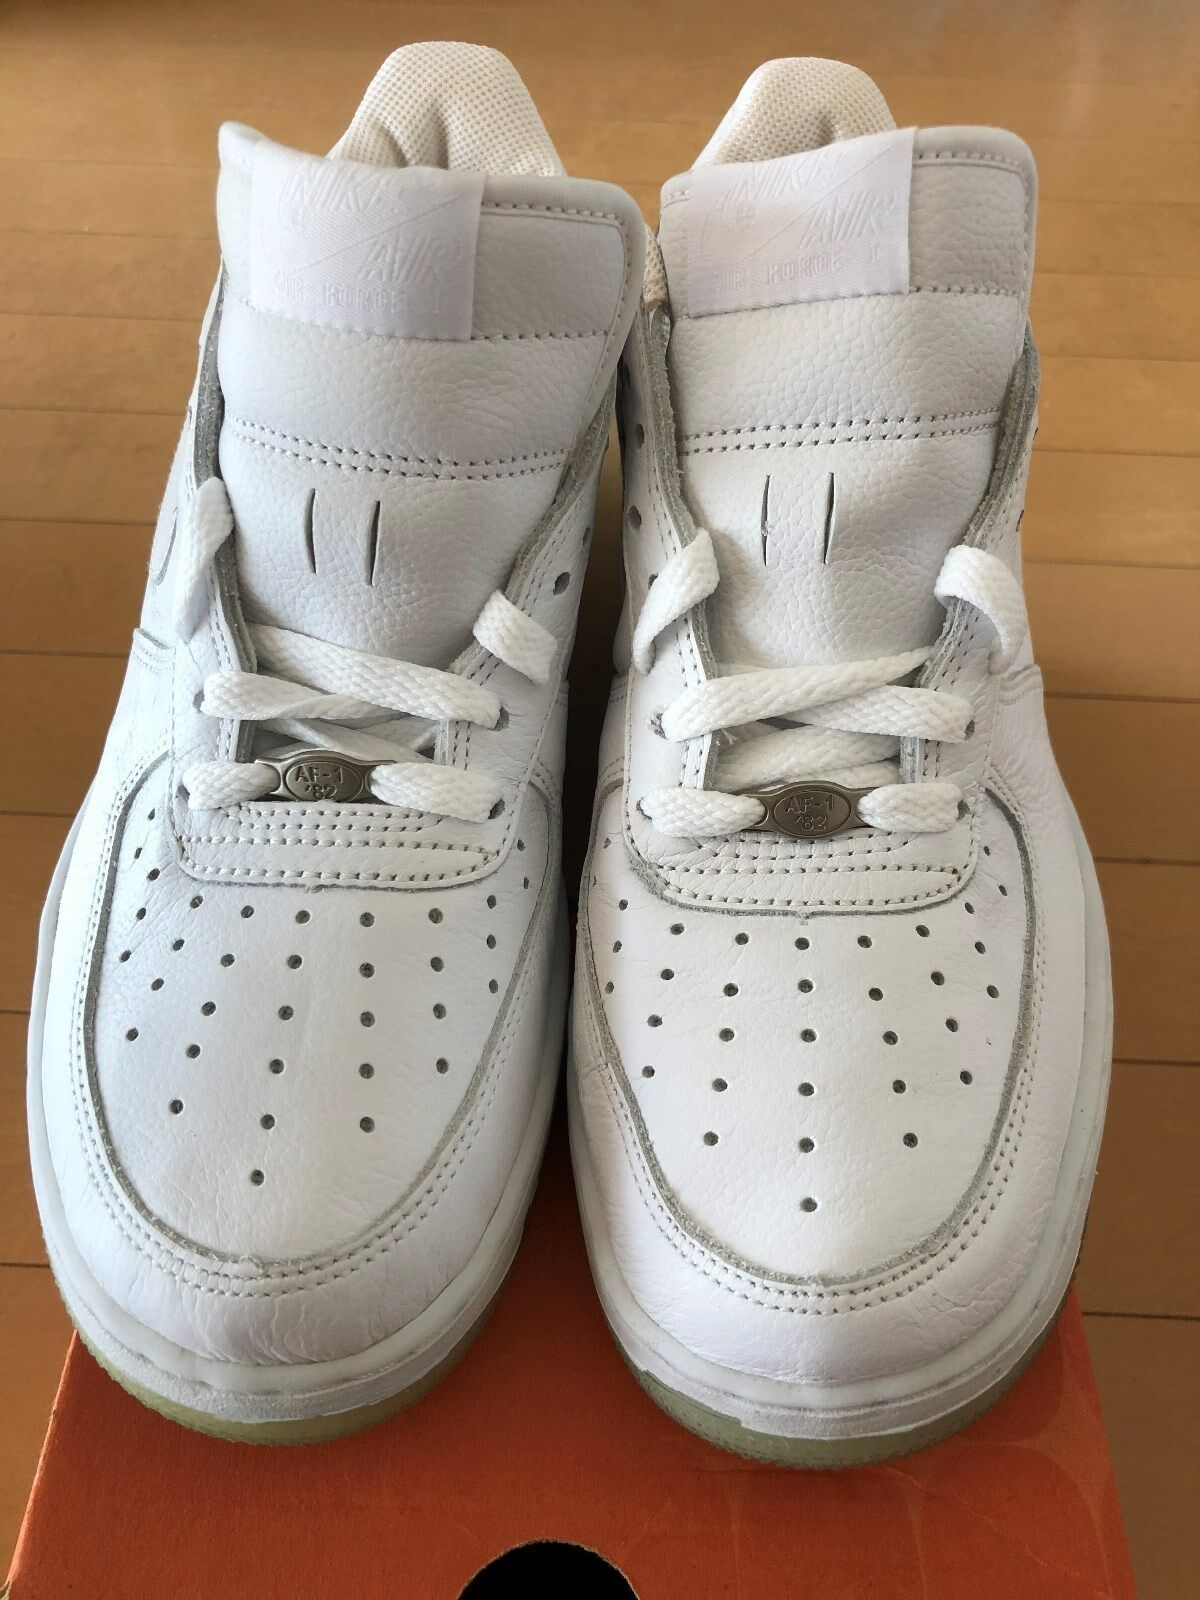 [Nike Achive] DS 2002 NIKE AIR FORCE 1 LOW 624040-114 ICE SZ8.5